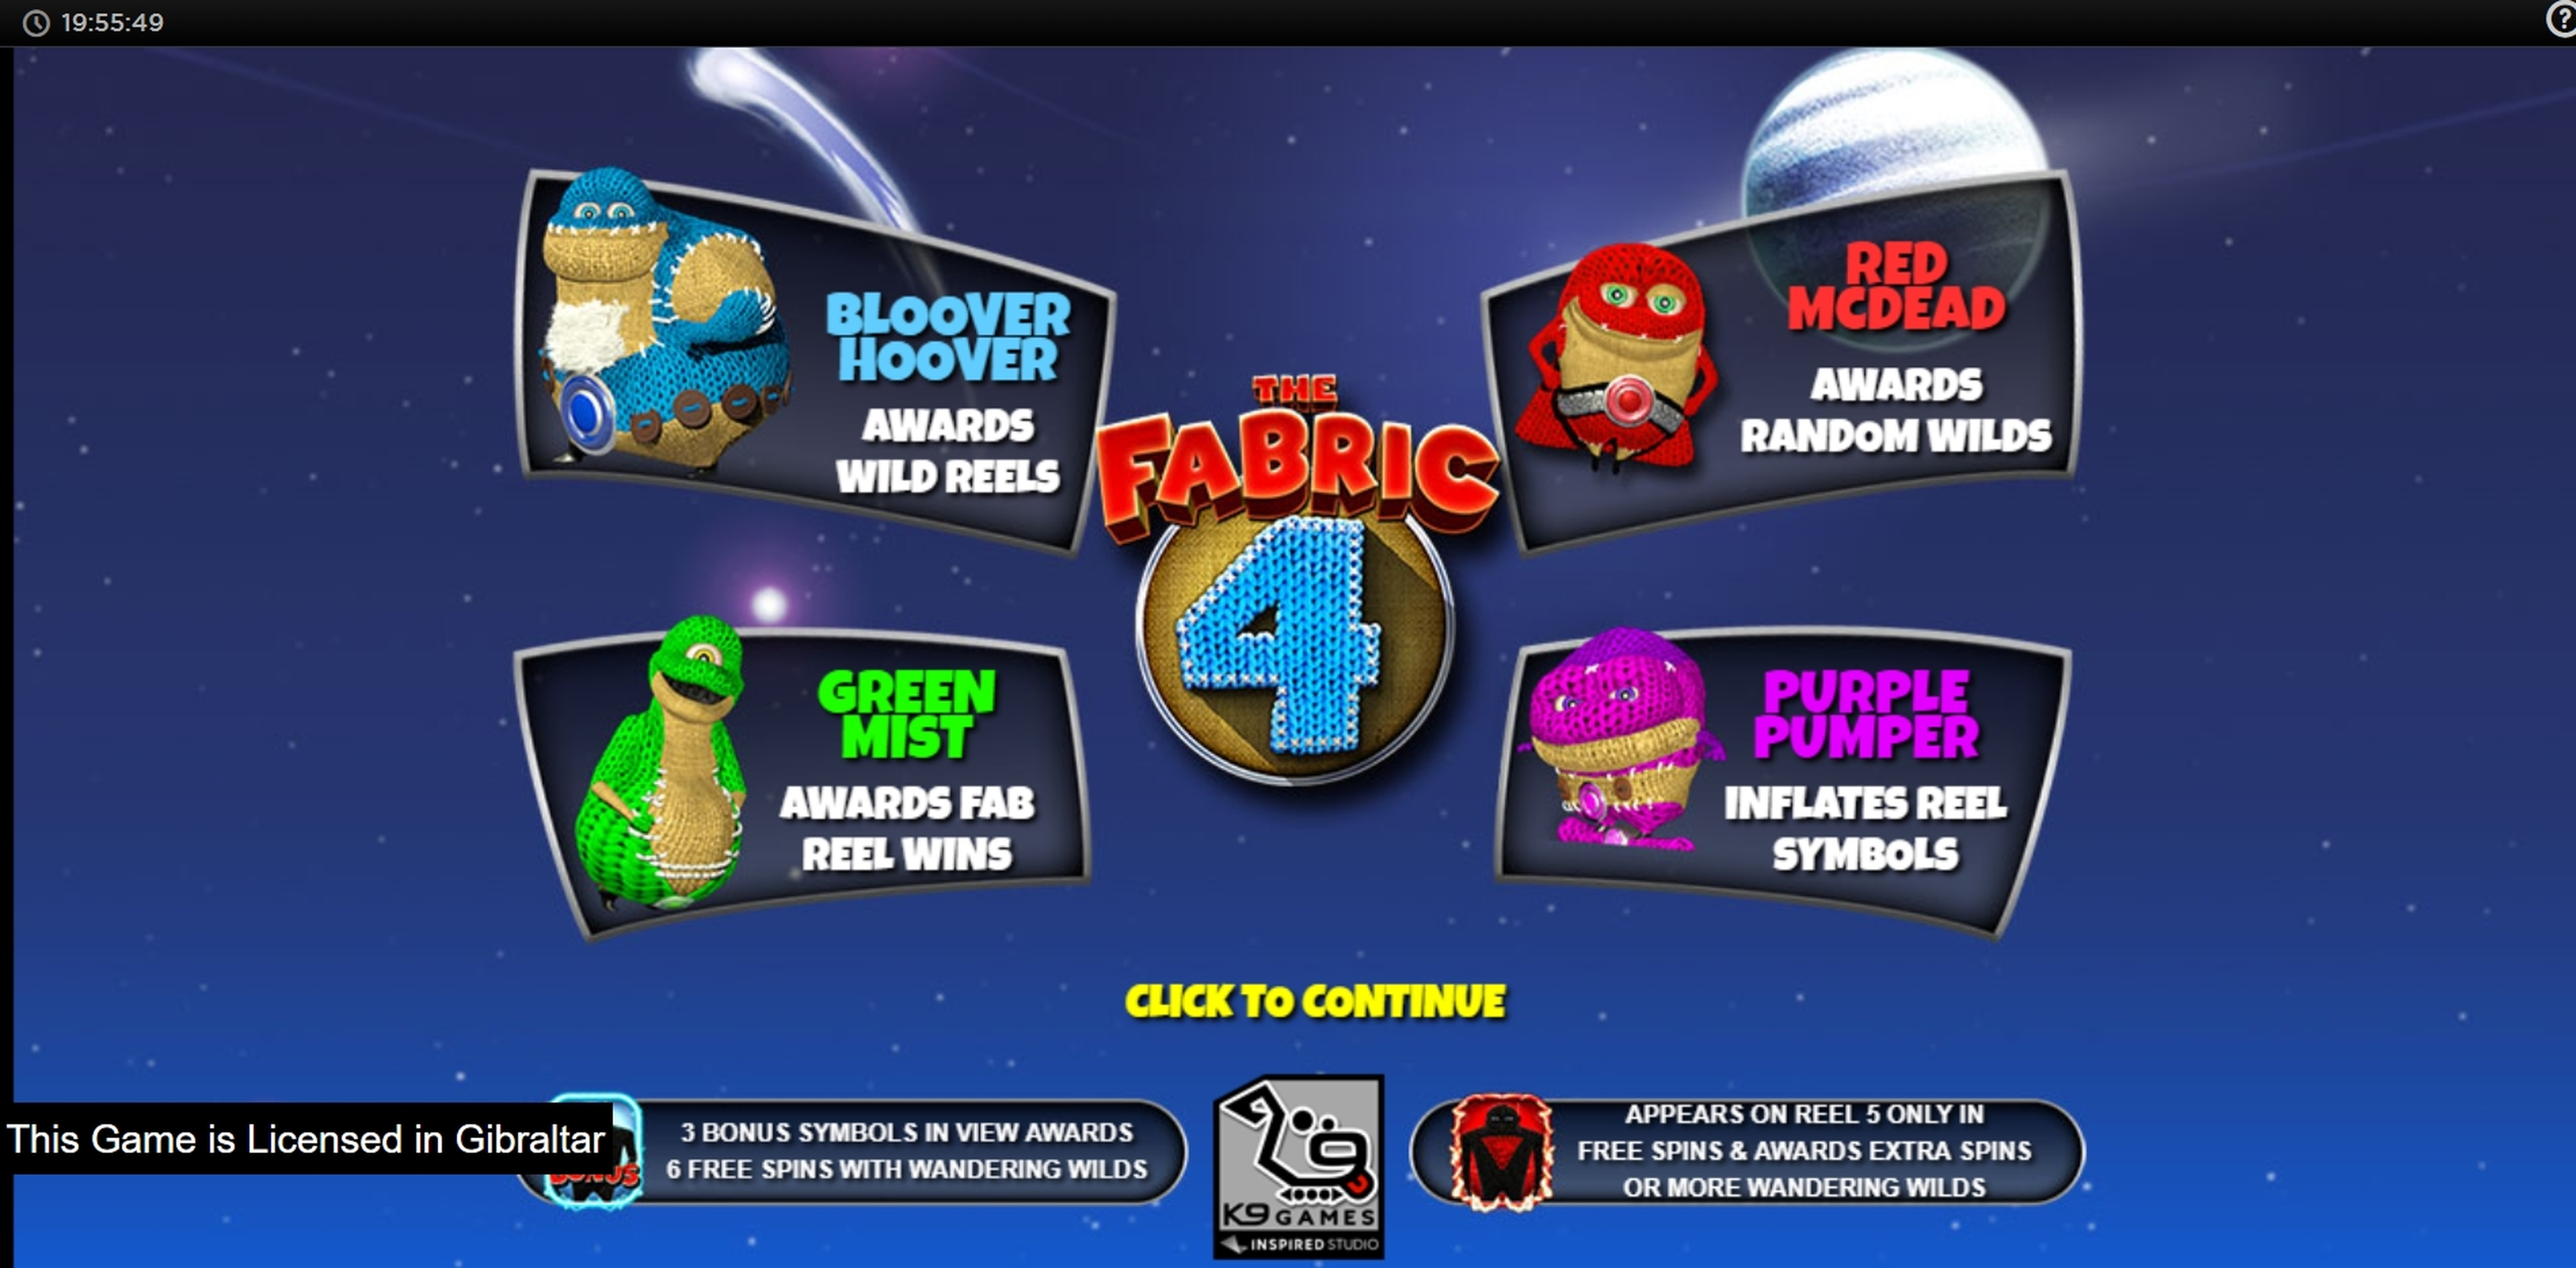 Play The Fabric 4 Free Casino Slot Game by Inspired Gaming